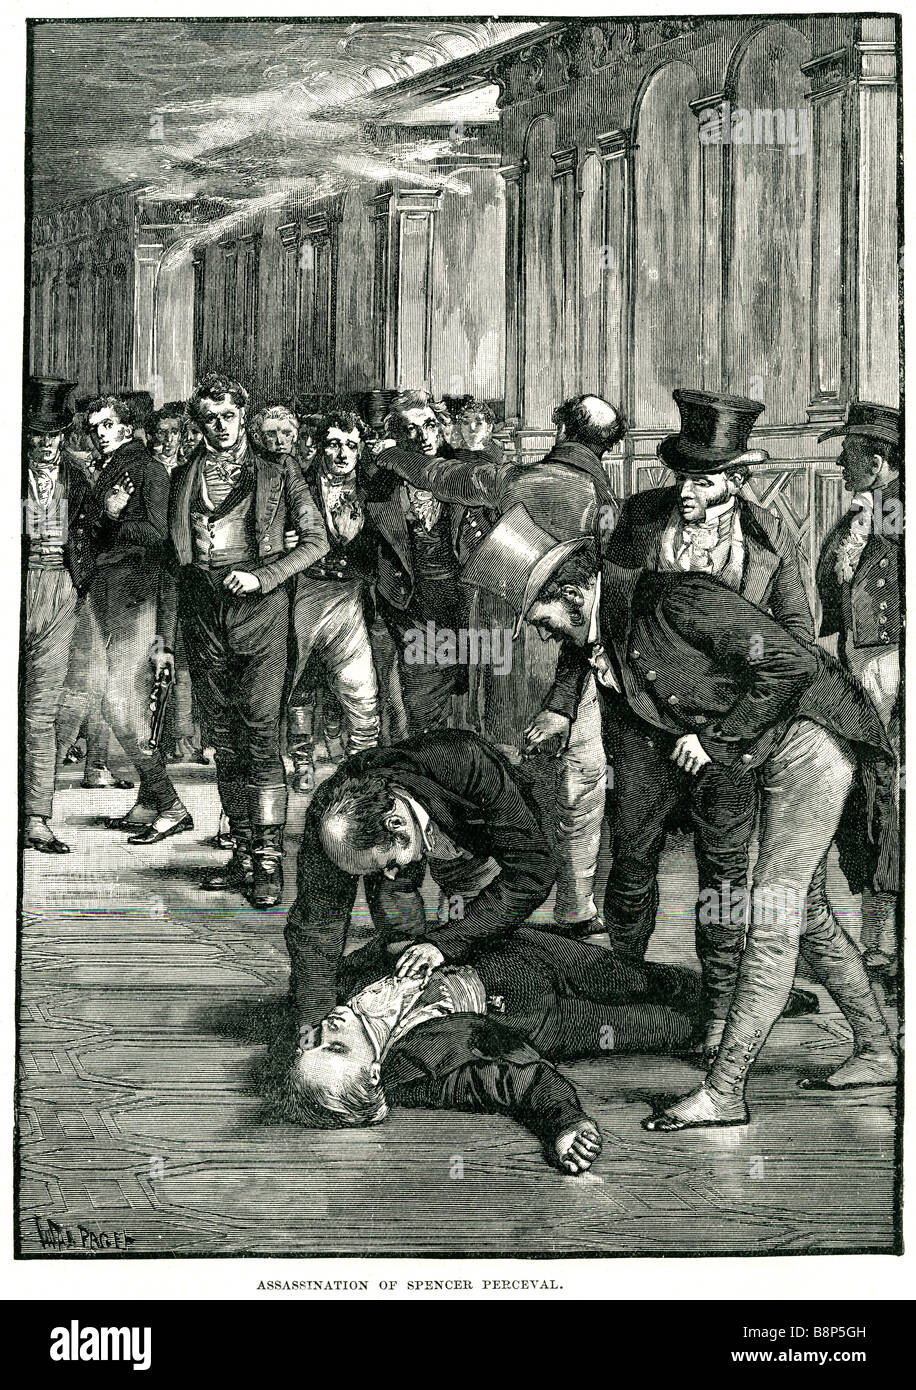 assasination spencer perceval 1812 assassinated British statesman Prime Minister British unpopular - Stock Image